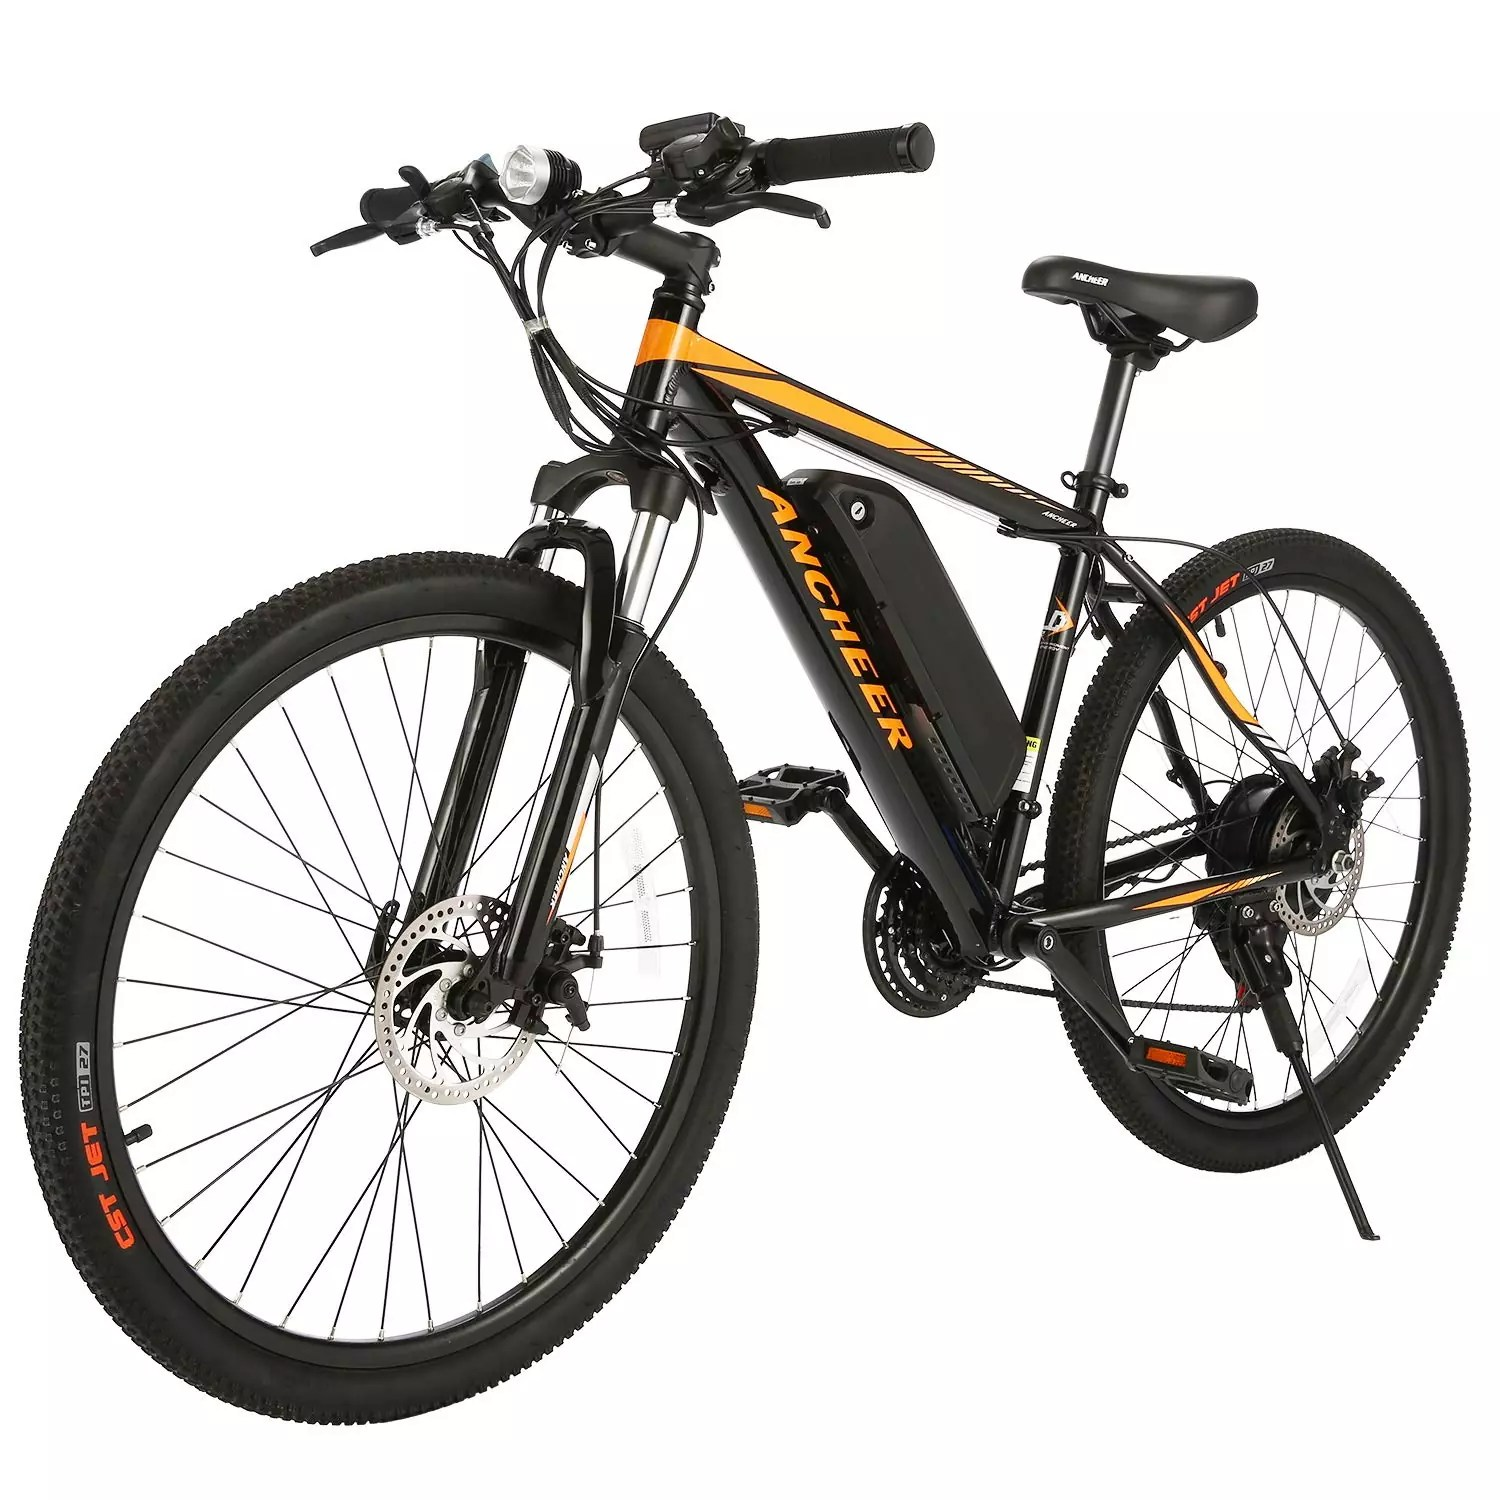 ANCHEER Electric Mountain Bike 350W